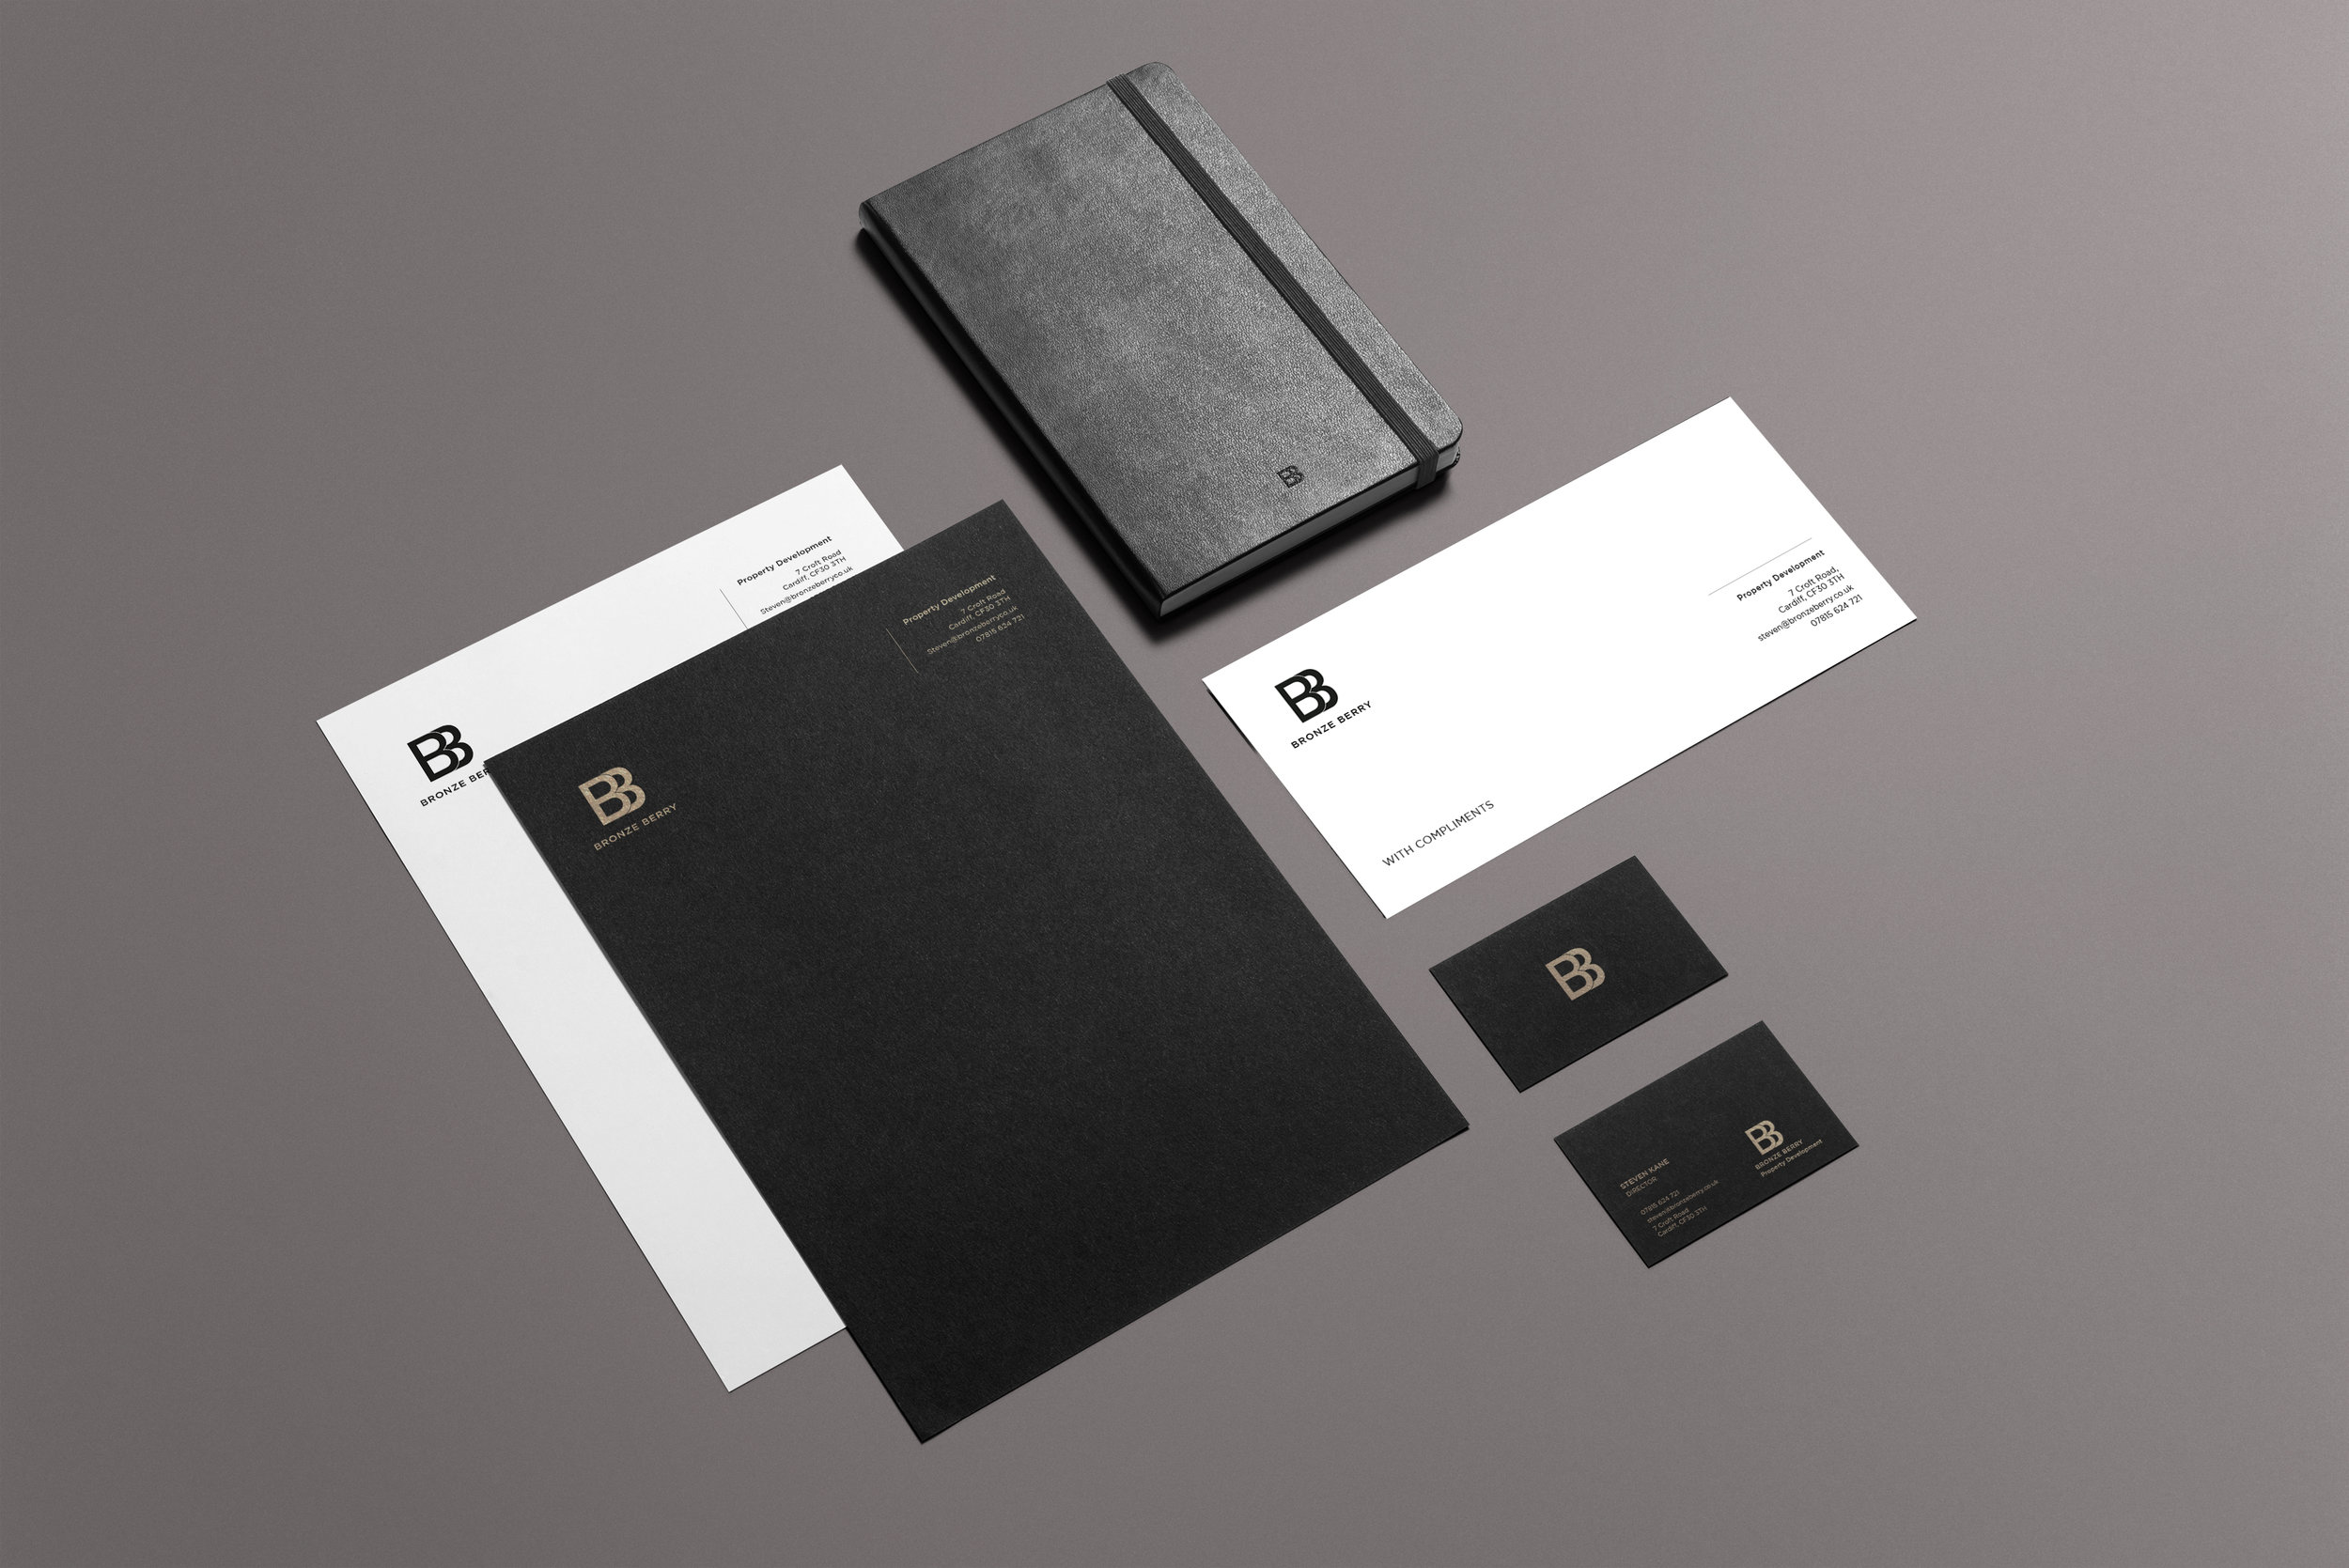 Luxury foiled brand collaterals in black